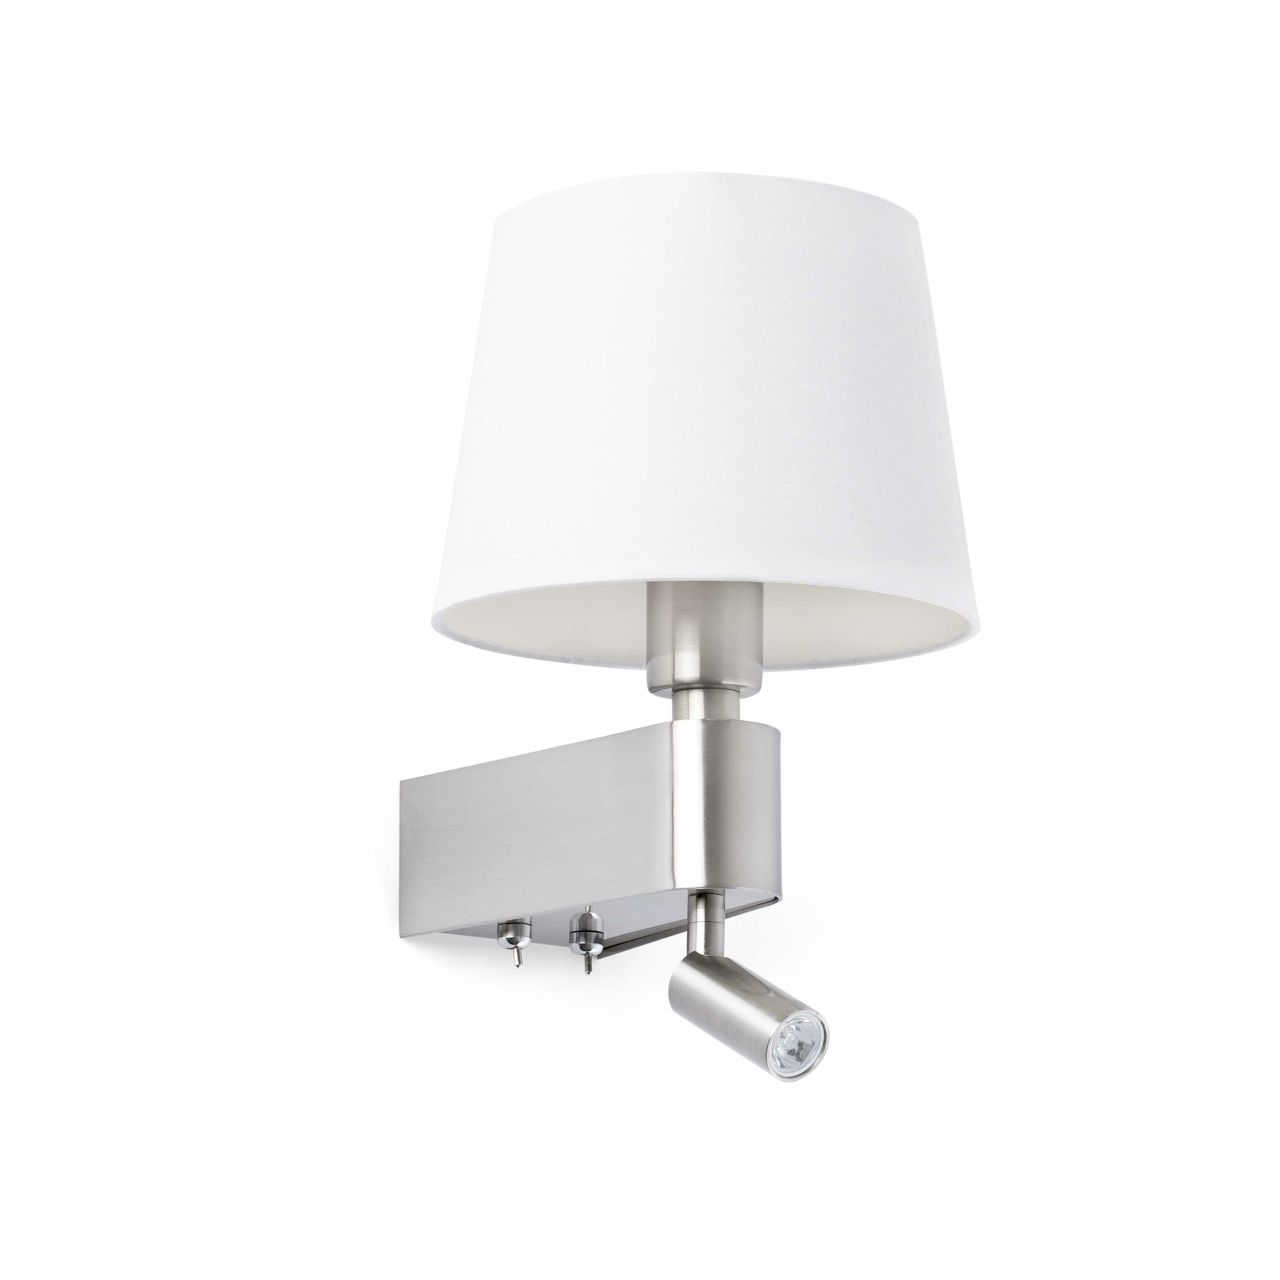 Comprar aplique de pared con lector de led comprar - Lamparas de aplique para pared ...